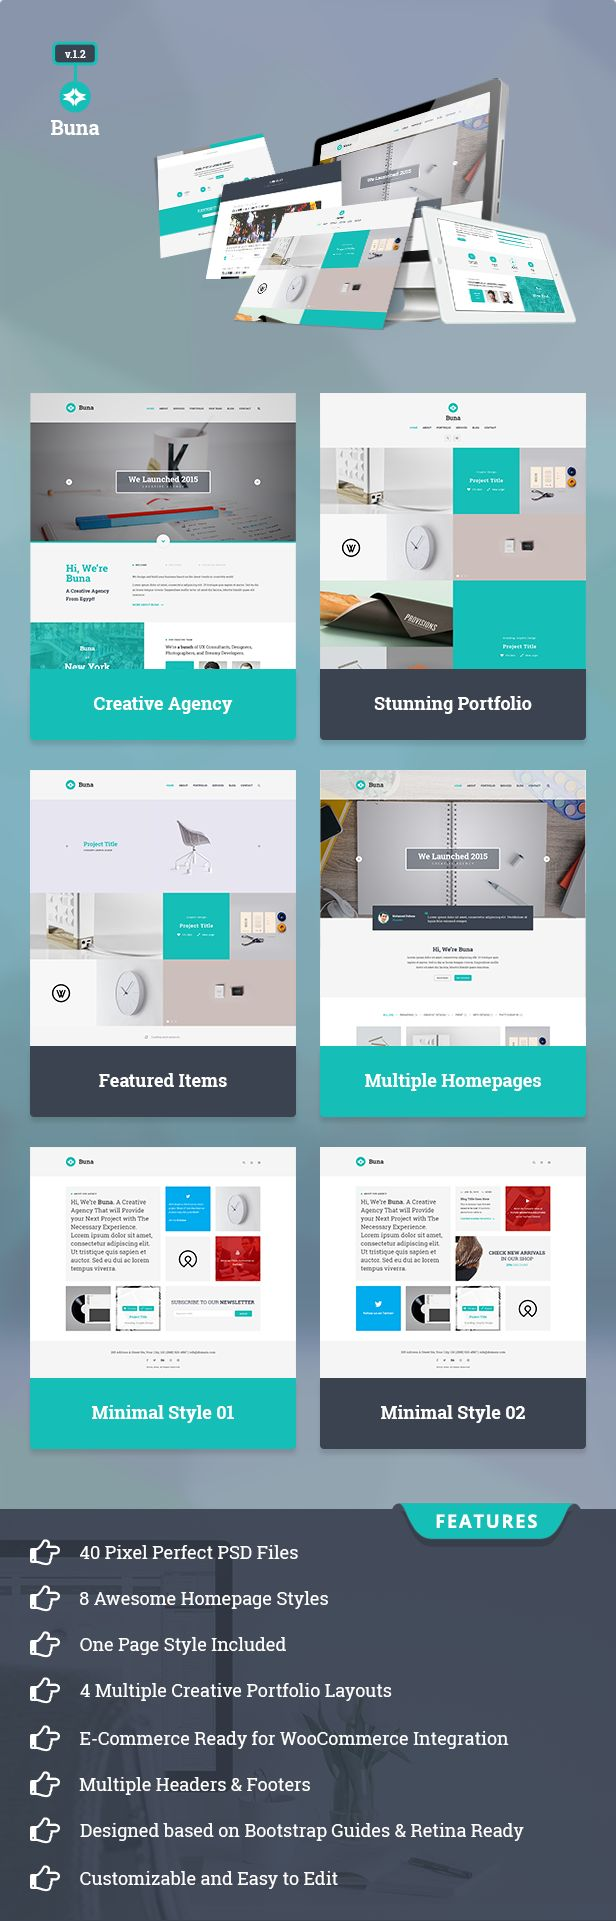 63 best Web Design images on Pinterest | Design websites, Site ...